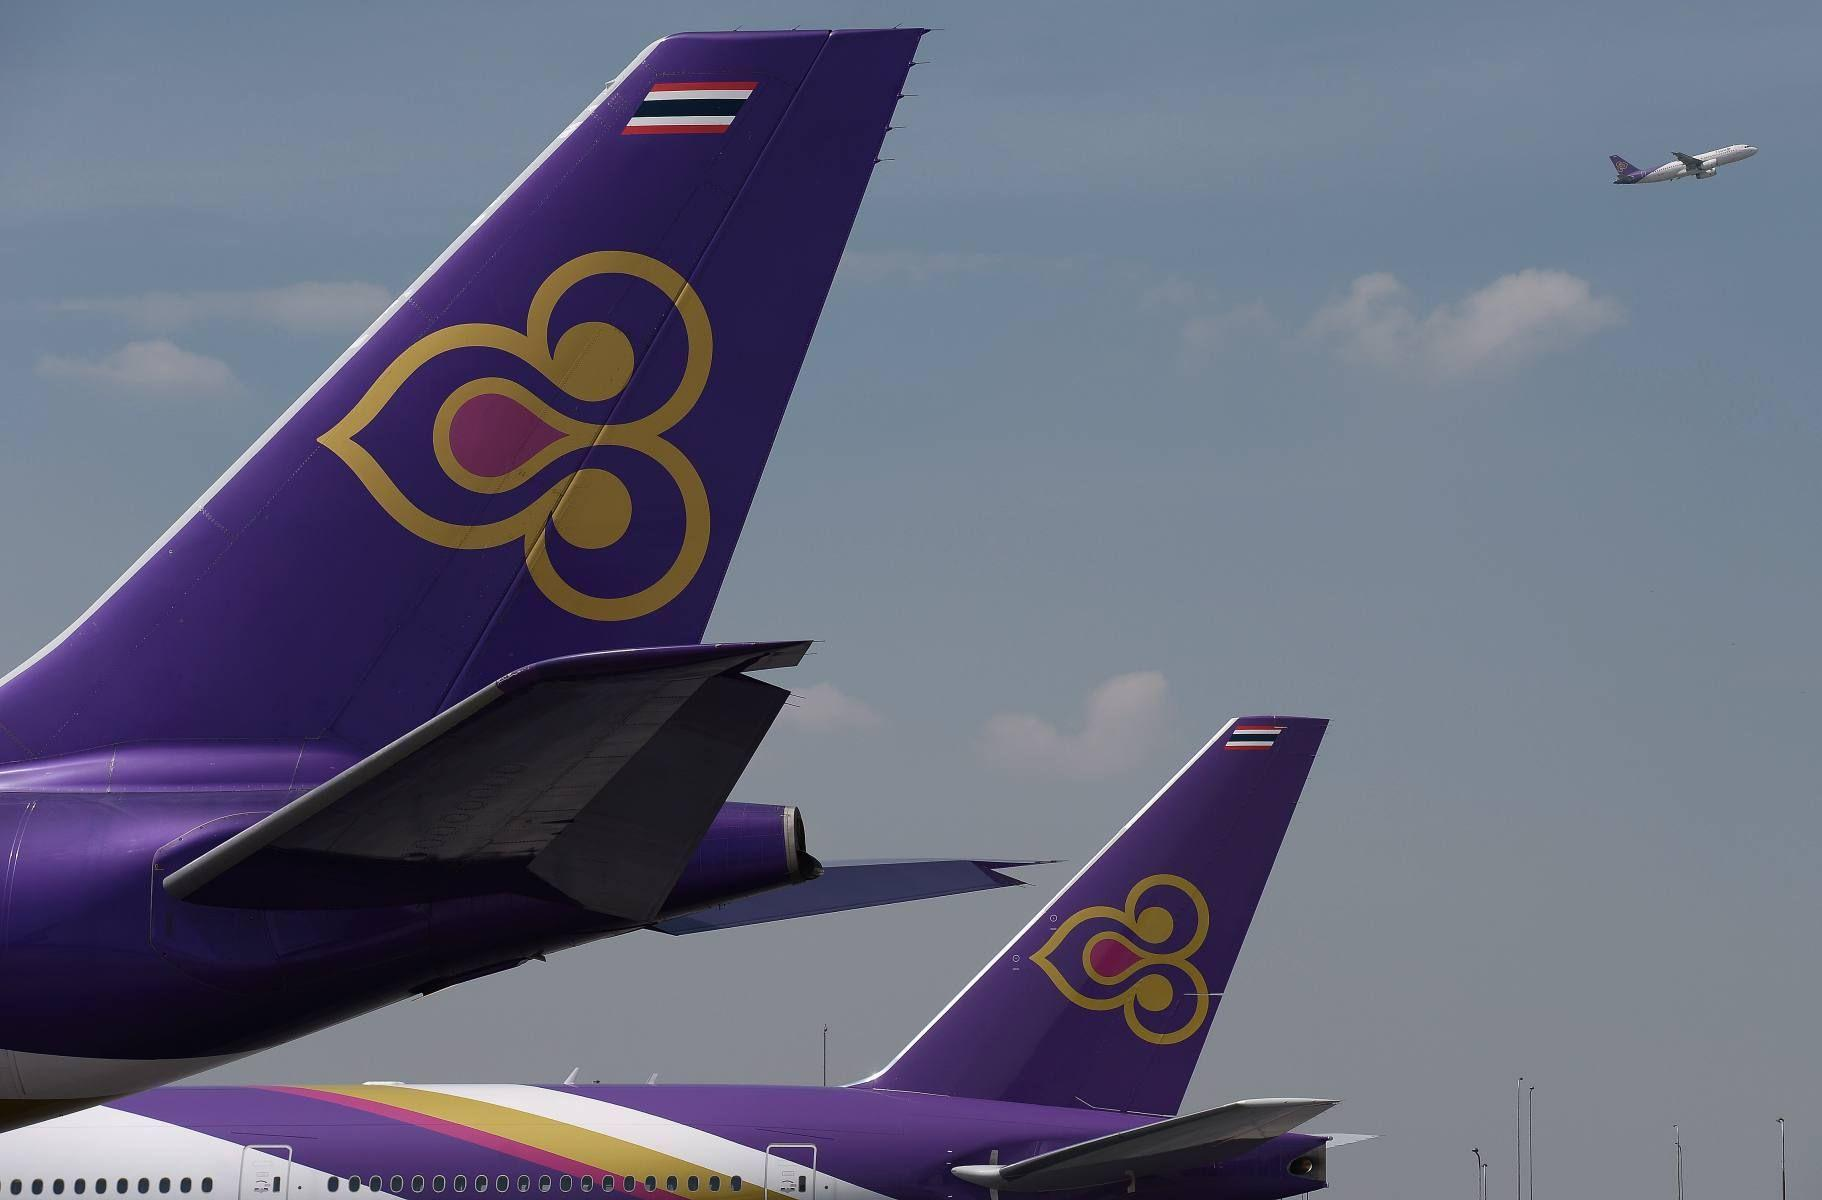 Thai Airways bans oversized passengers in business class for safety reasons